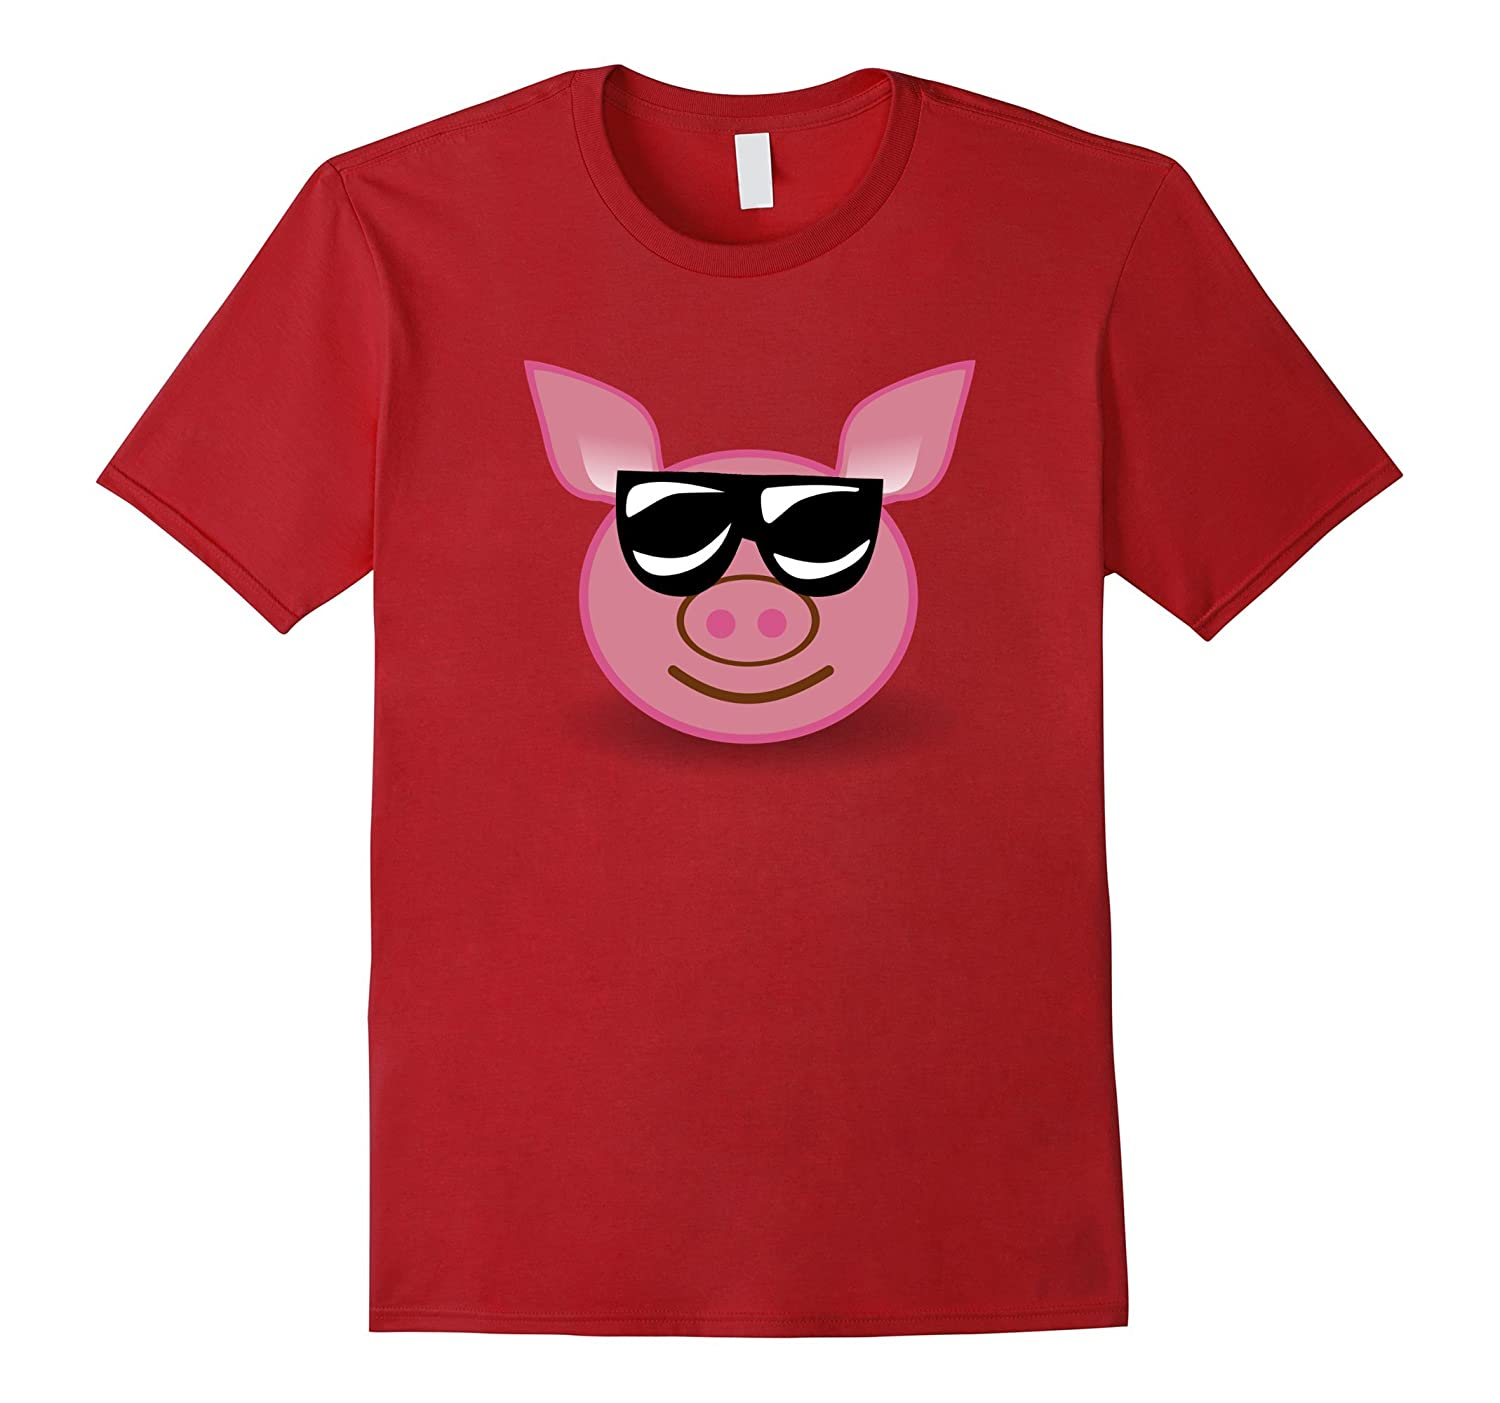 Funny Animal Shirt Piggy With Sunglasses For Pig Lovers